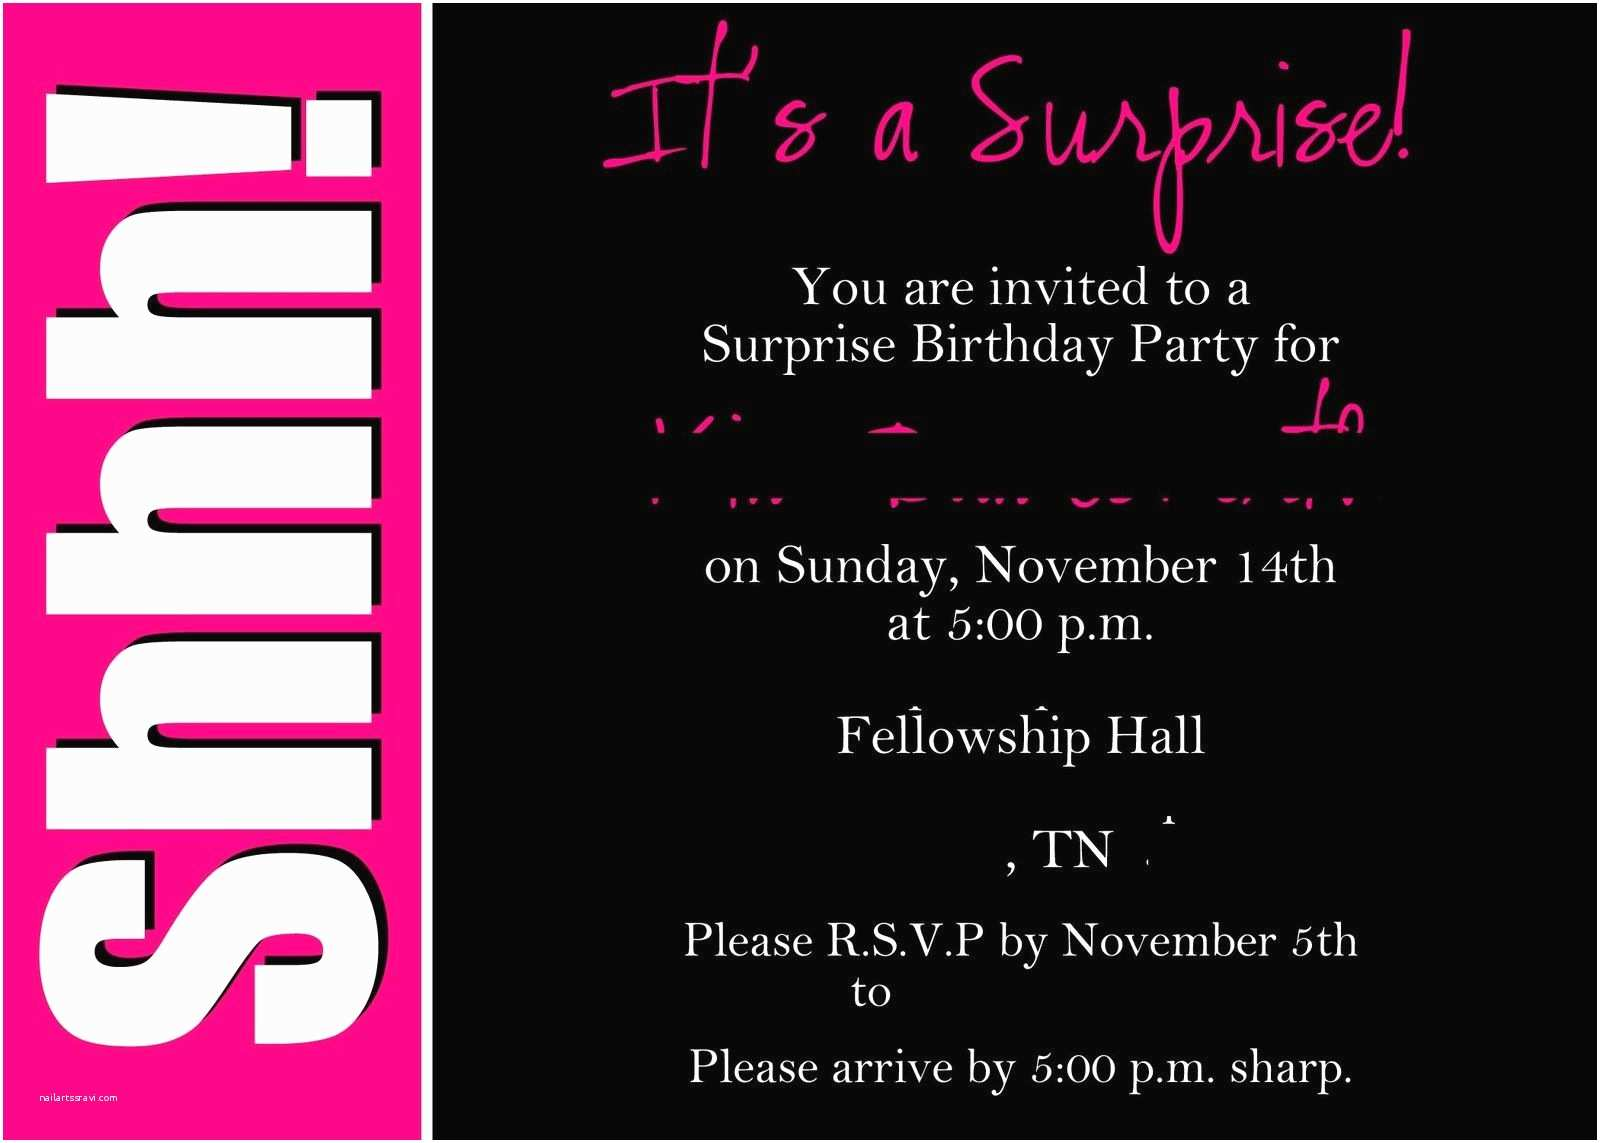 Surprise Party Invitation Template 40th Surprise Birthday Party Invitations